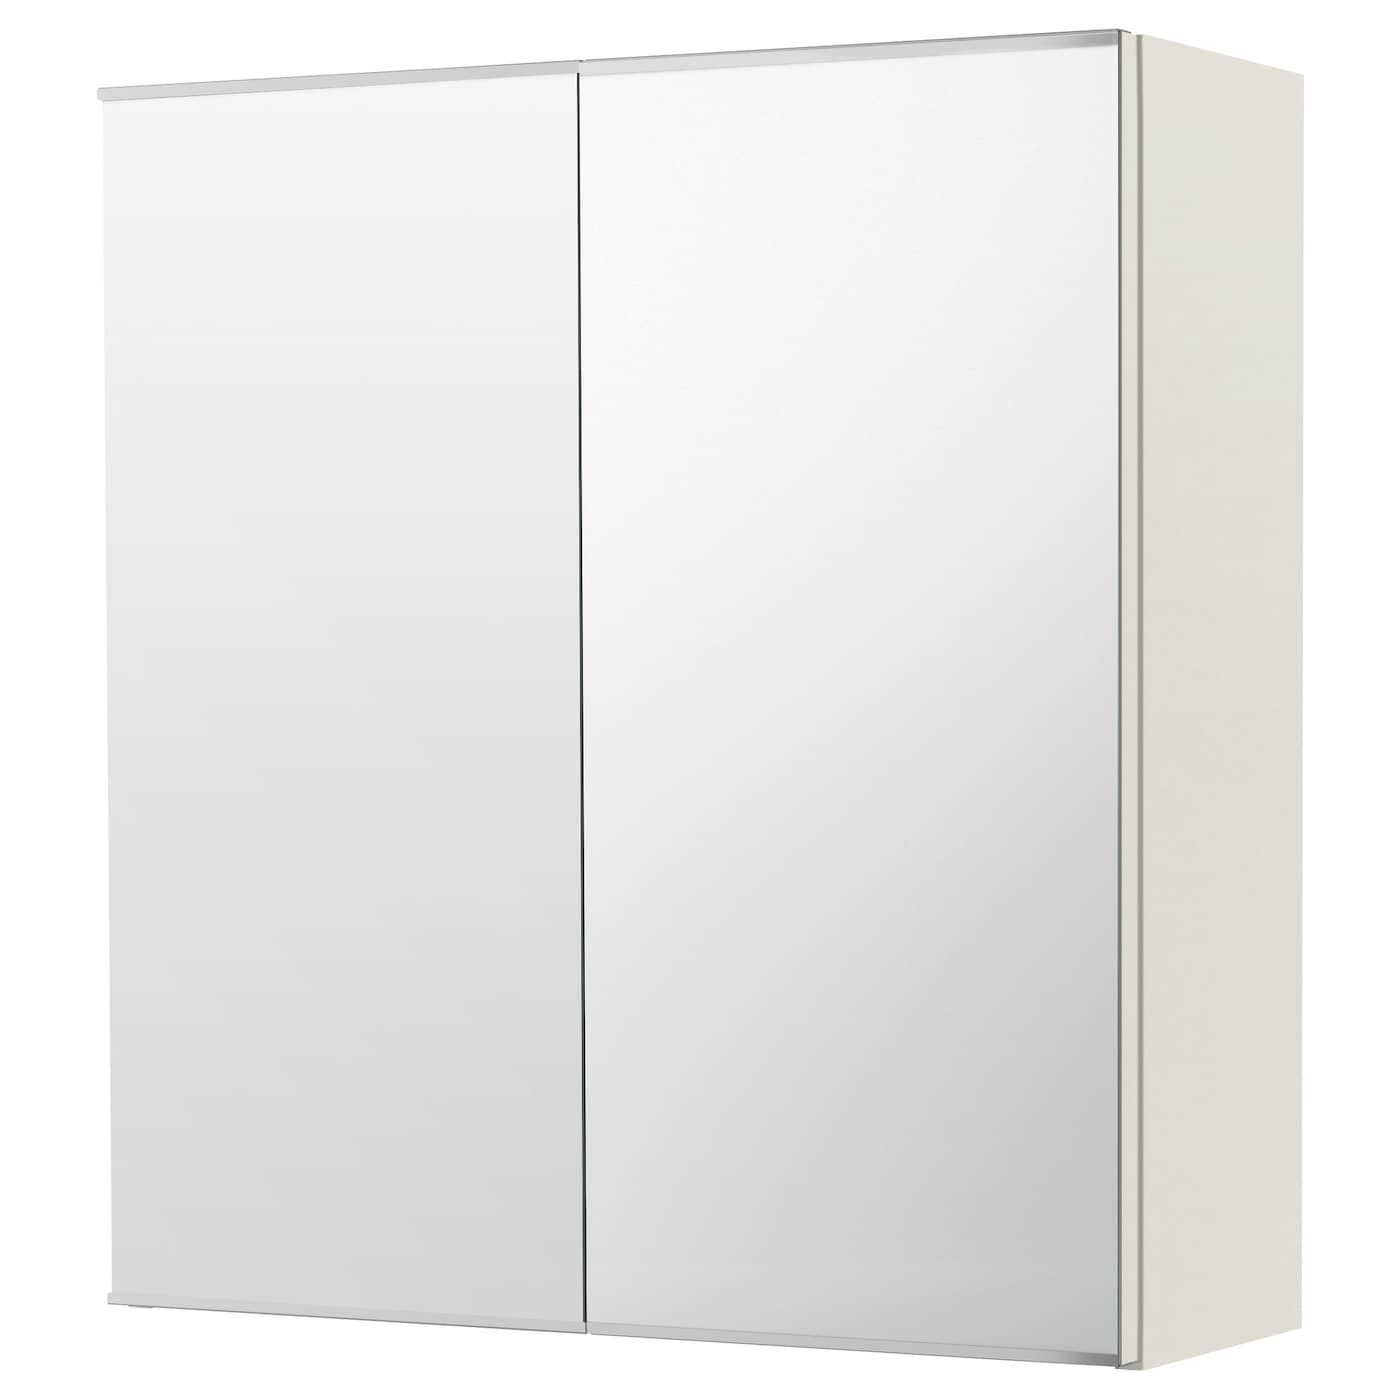 Ikea Lill Ngen Mirror Cabinet With 2 Doors